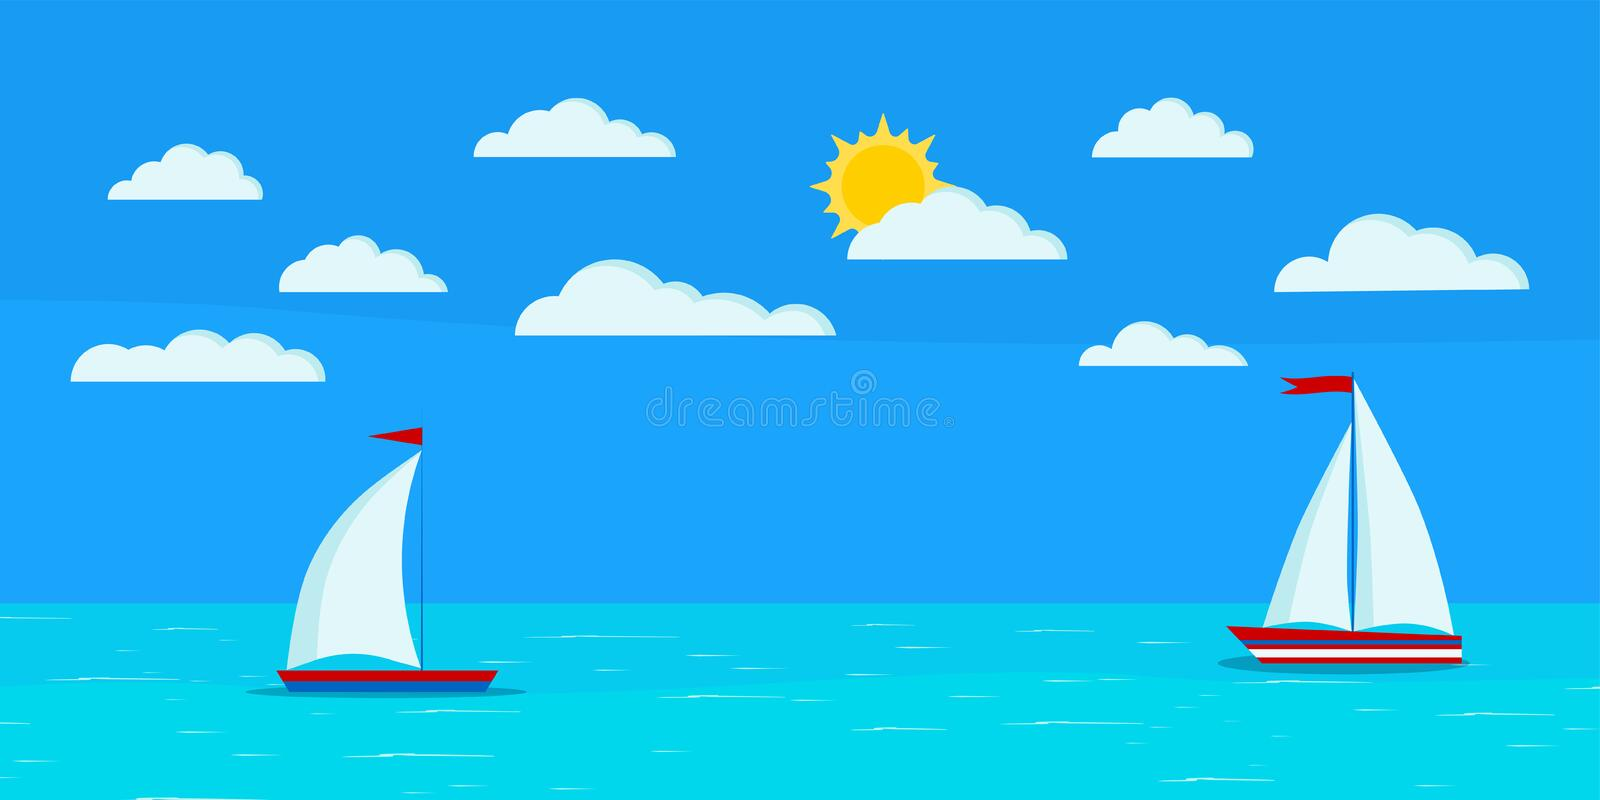 Cartoon flat design style sea landscape with two sailboats, clouds, blue sky, sun, calm ocean. Vector summer day banner illustration for tourist, traveling vector illustration